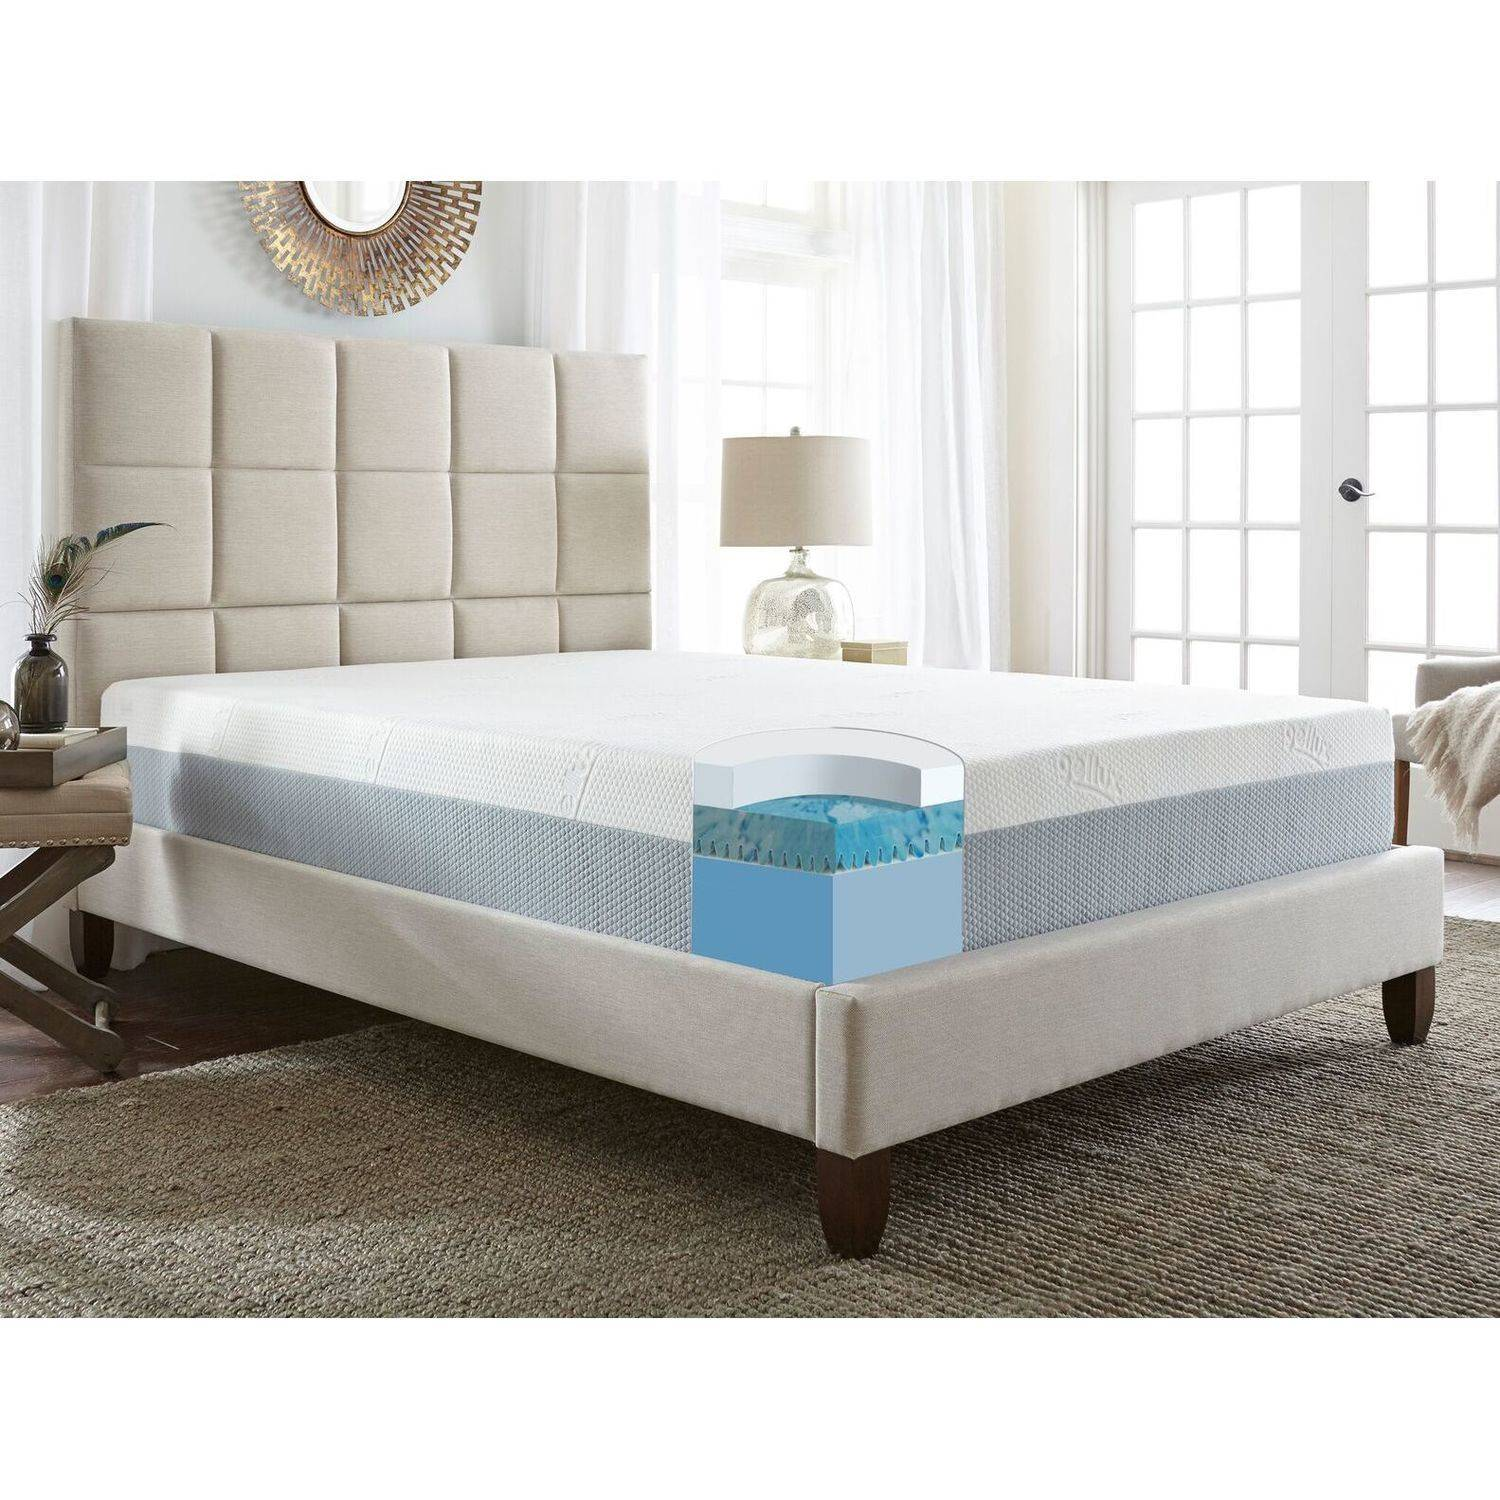 Click here to buy Contura III 12 Inch Medium Firm Memory Foam Mattress Bed by Contura.